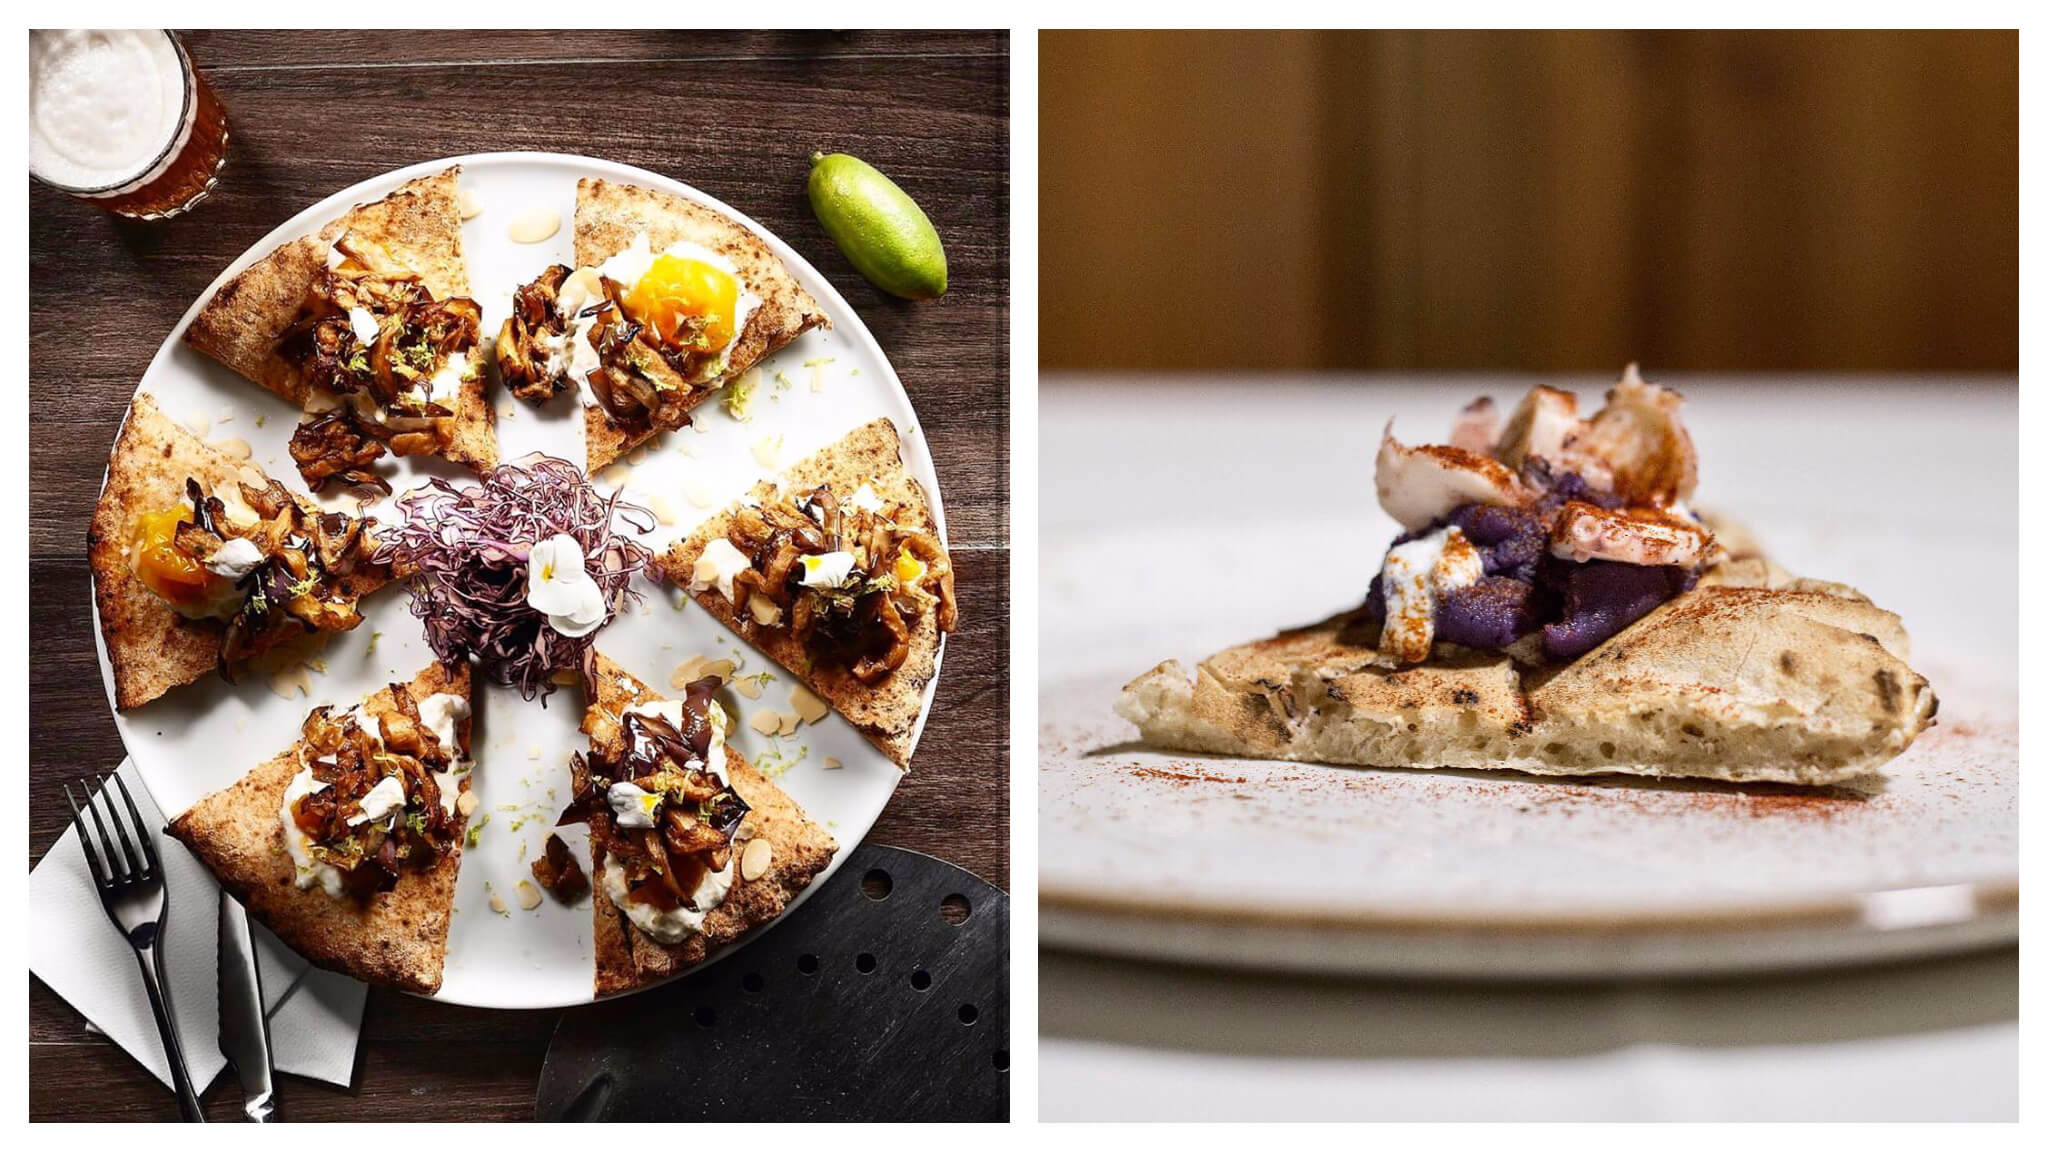 Left: a bird's eye view of individual slices of pizza on a plate with a knife and fork and a beer next to it. Right: a slice of pizza on a plate with a purple and white topping.